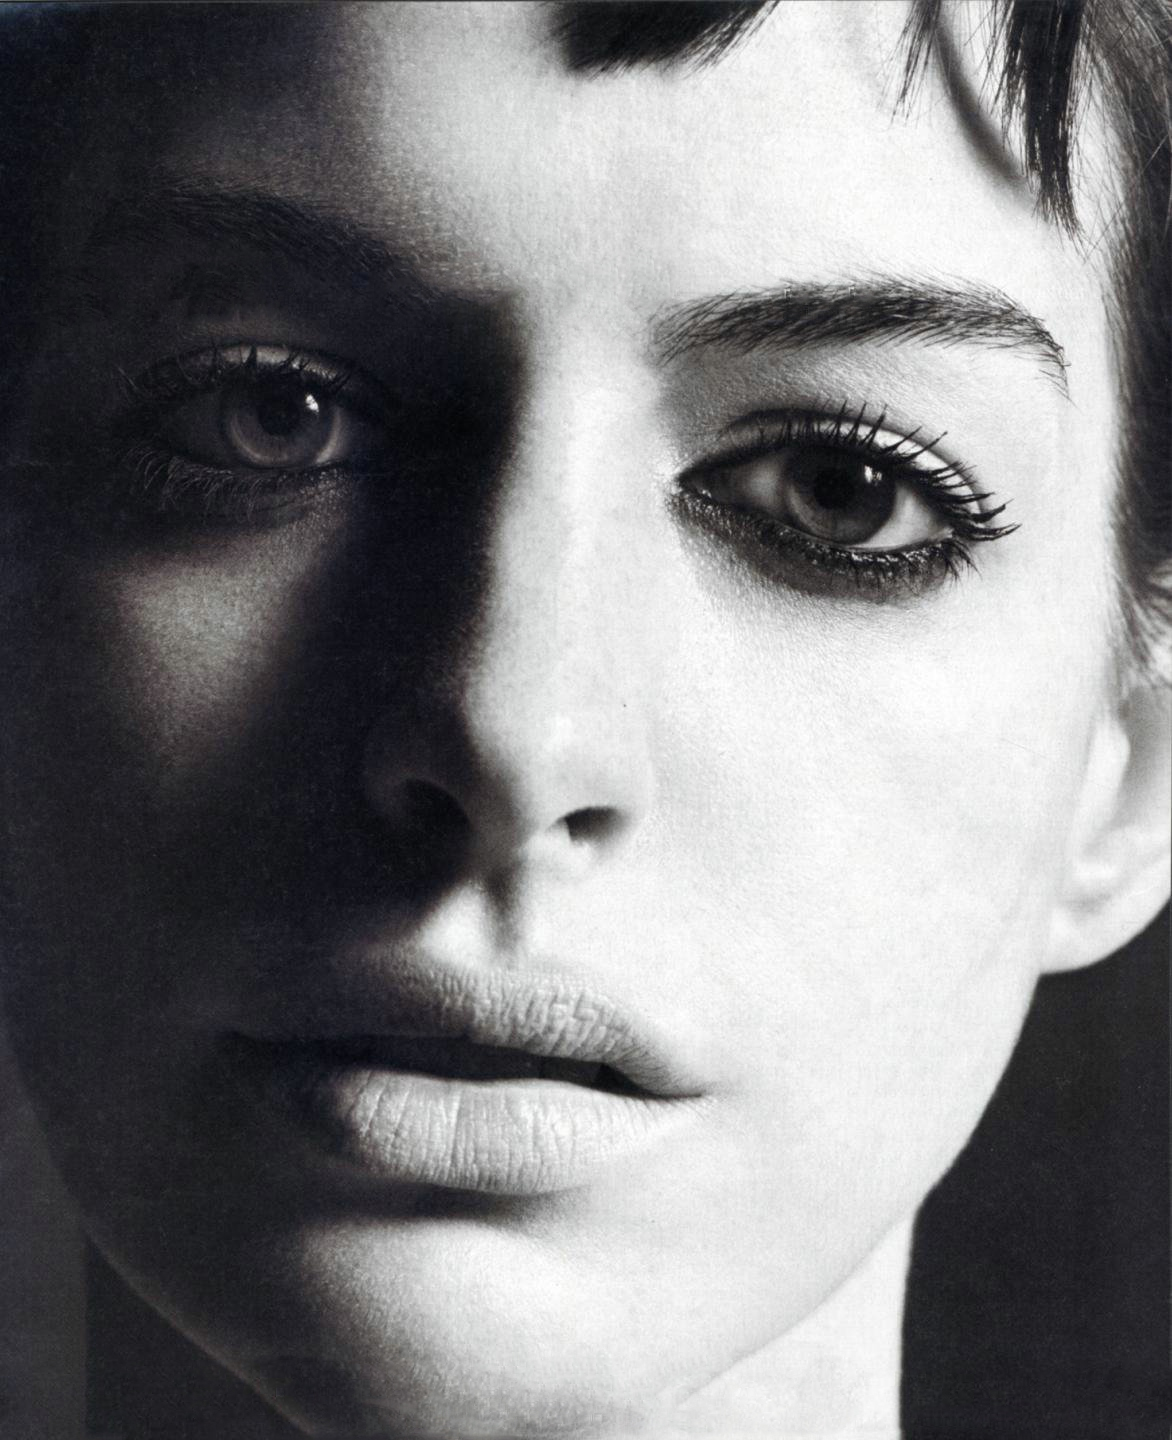 TREND: August 2012: Cover Story: Anne Hathaway